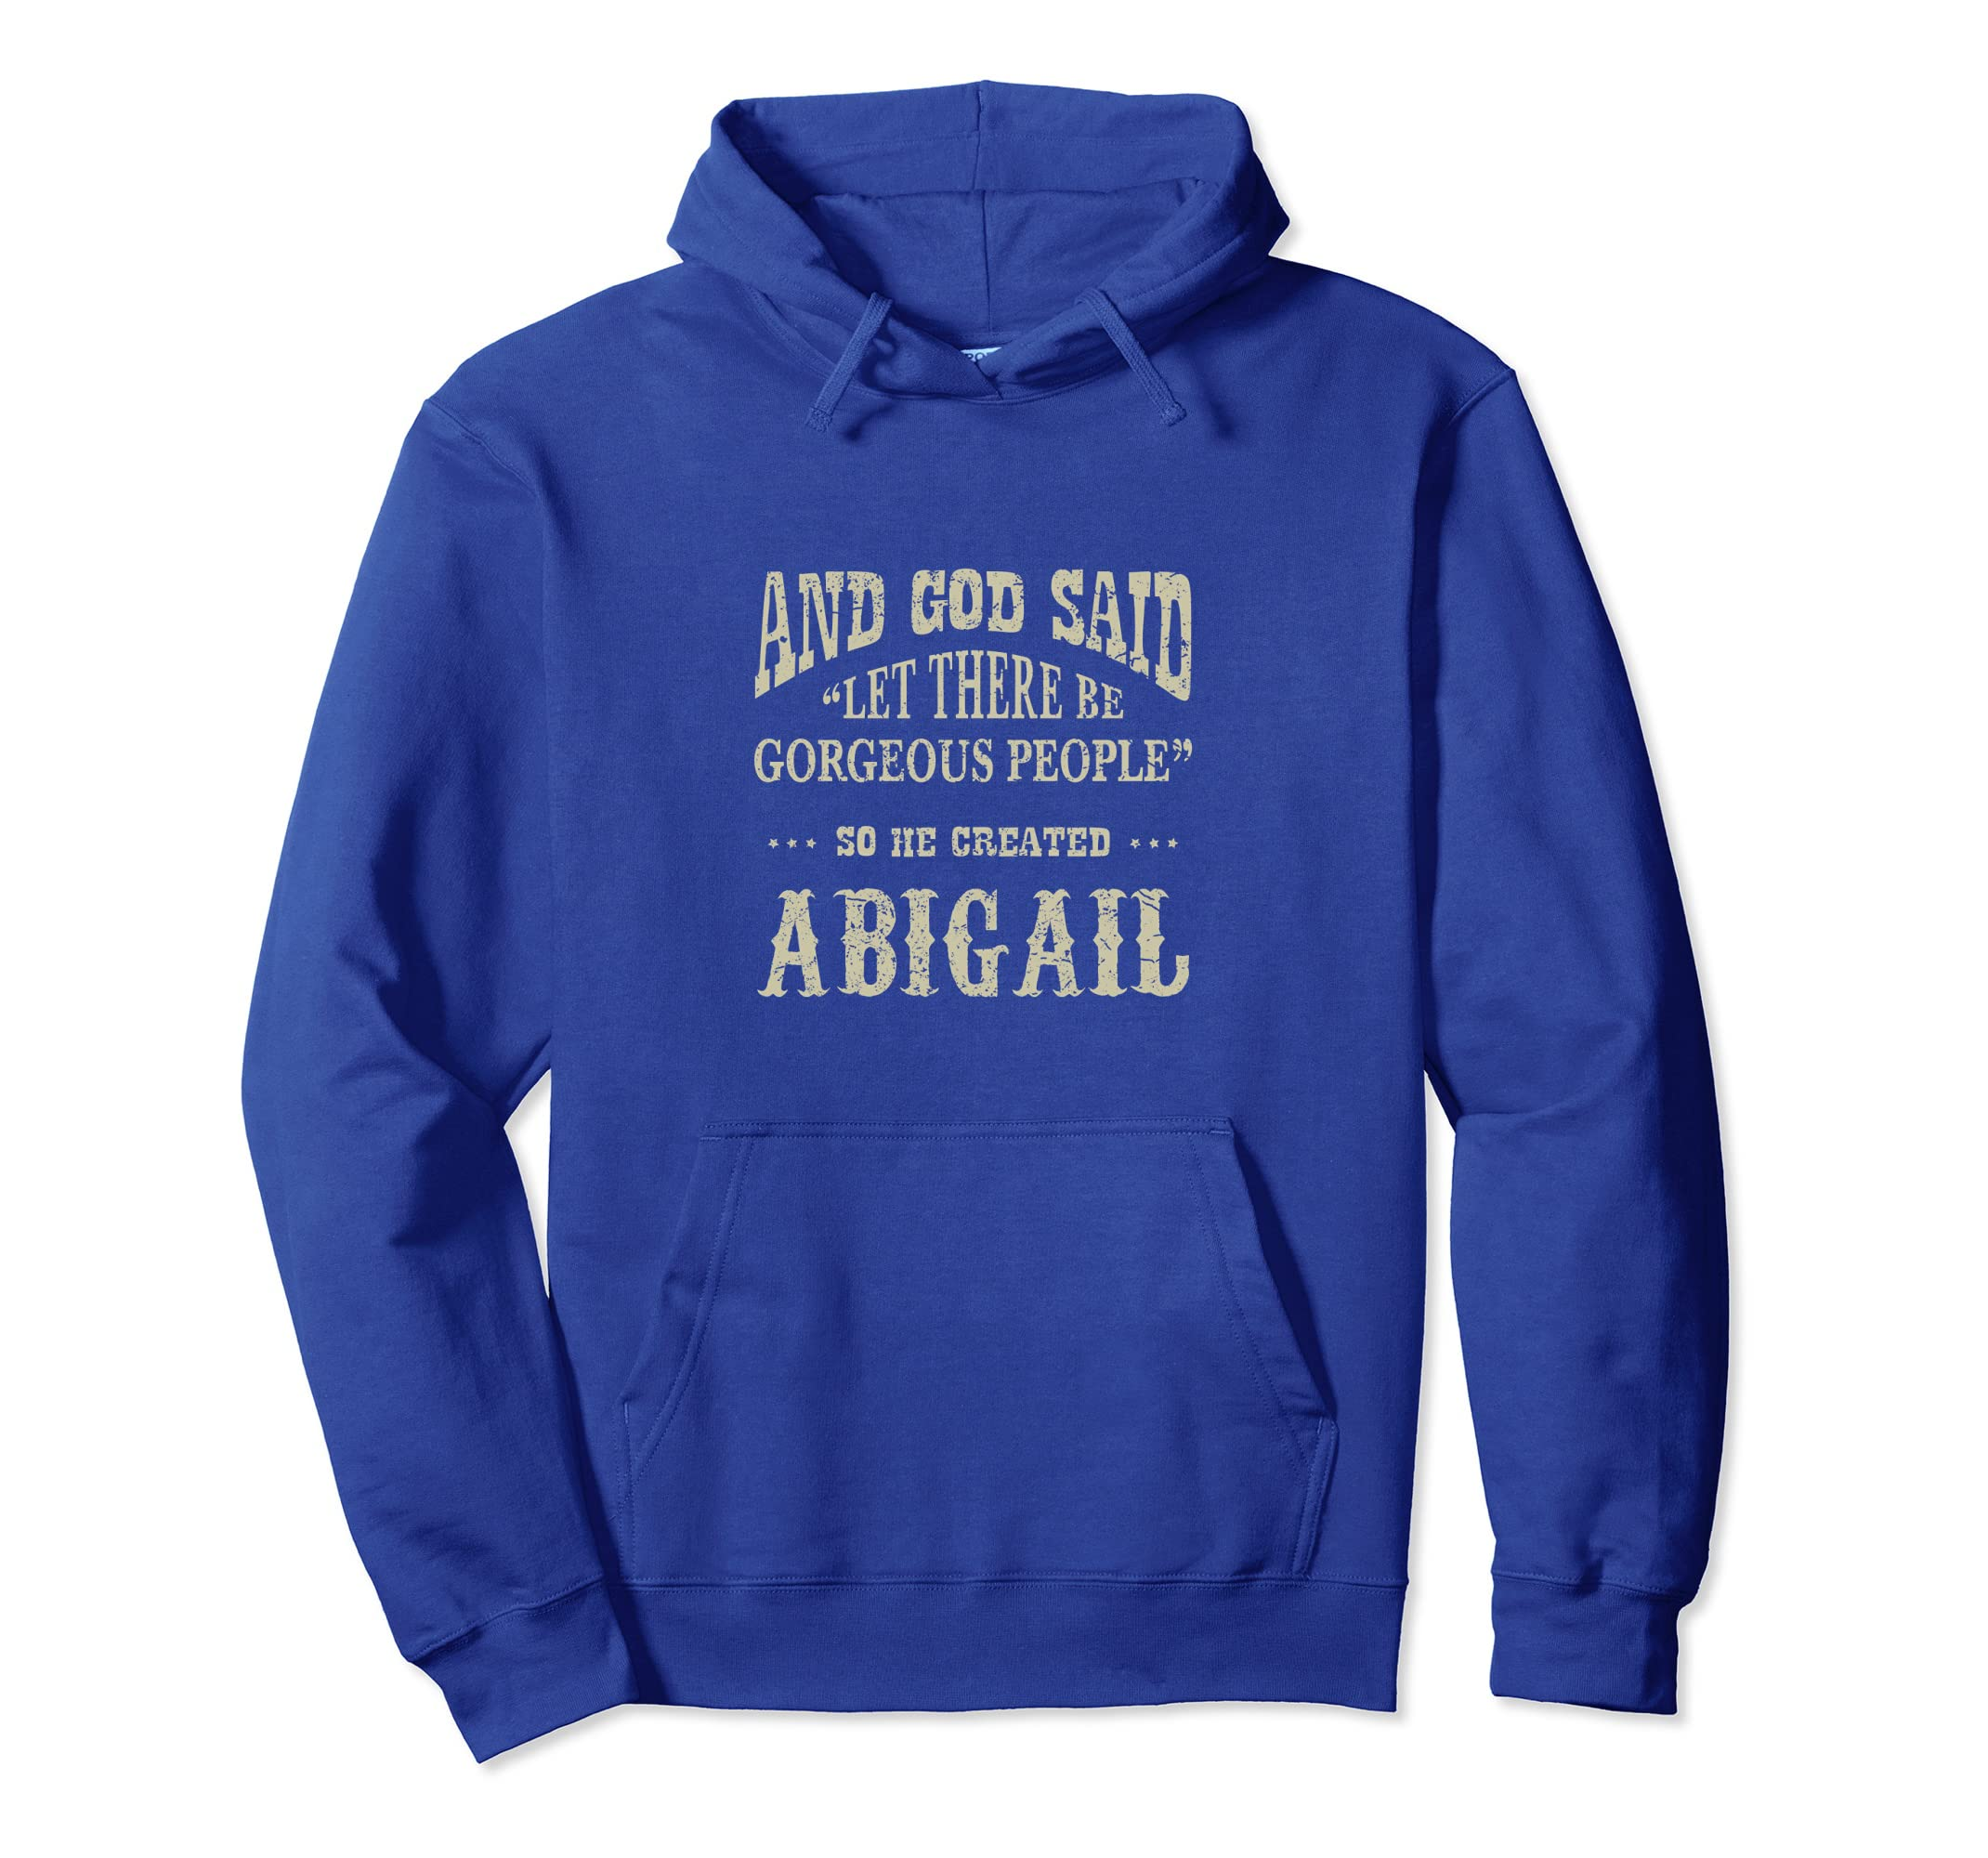 Personalized Hoodies Birthday Gift For Abigail